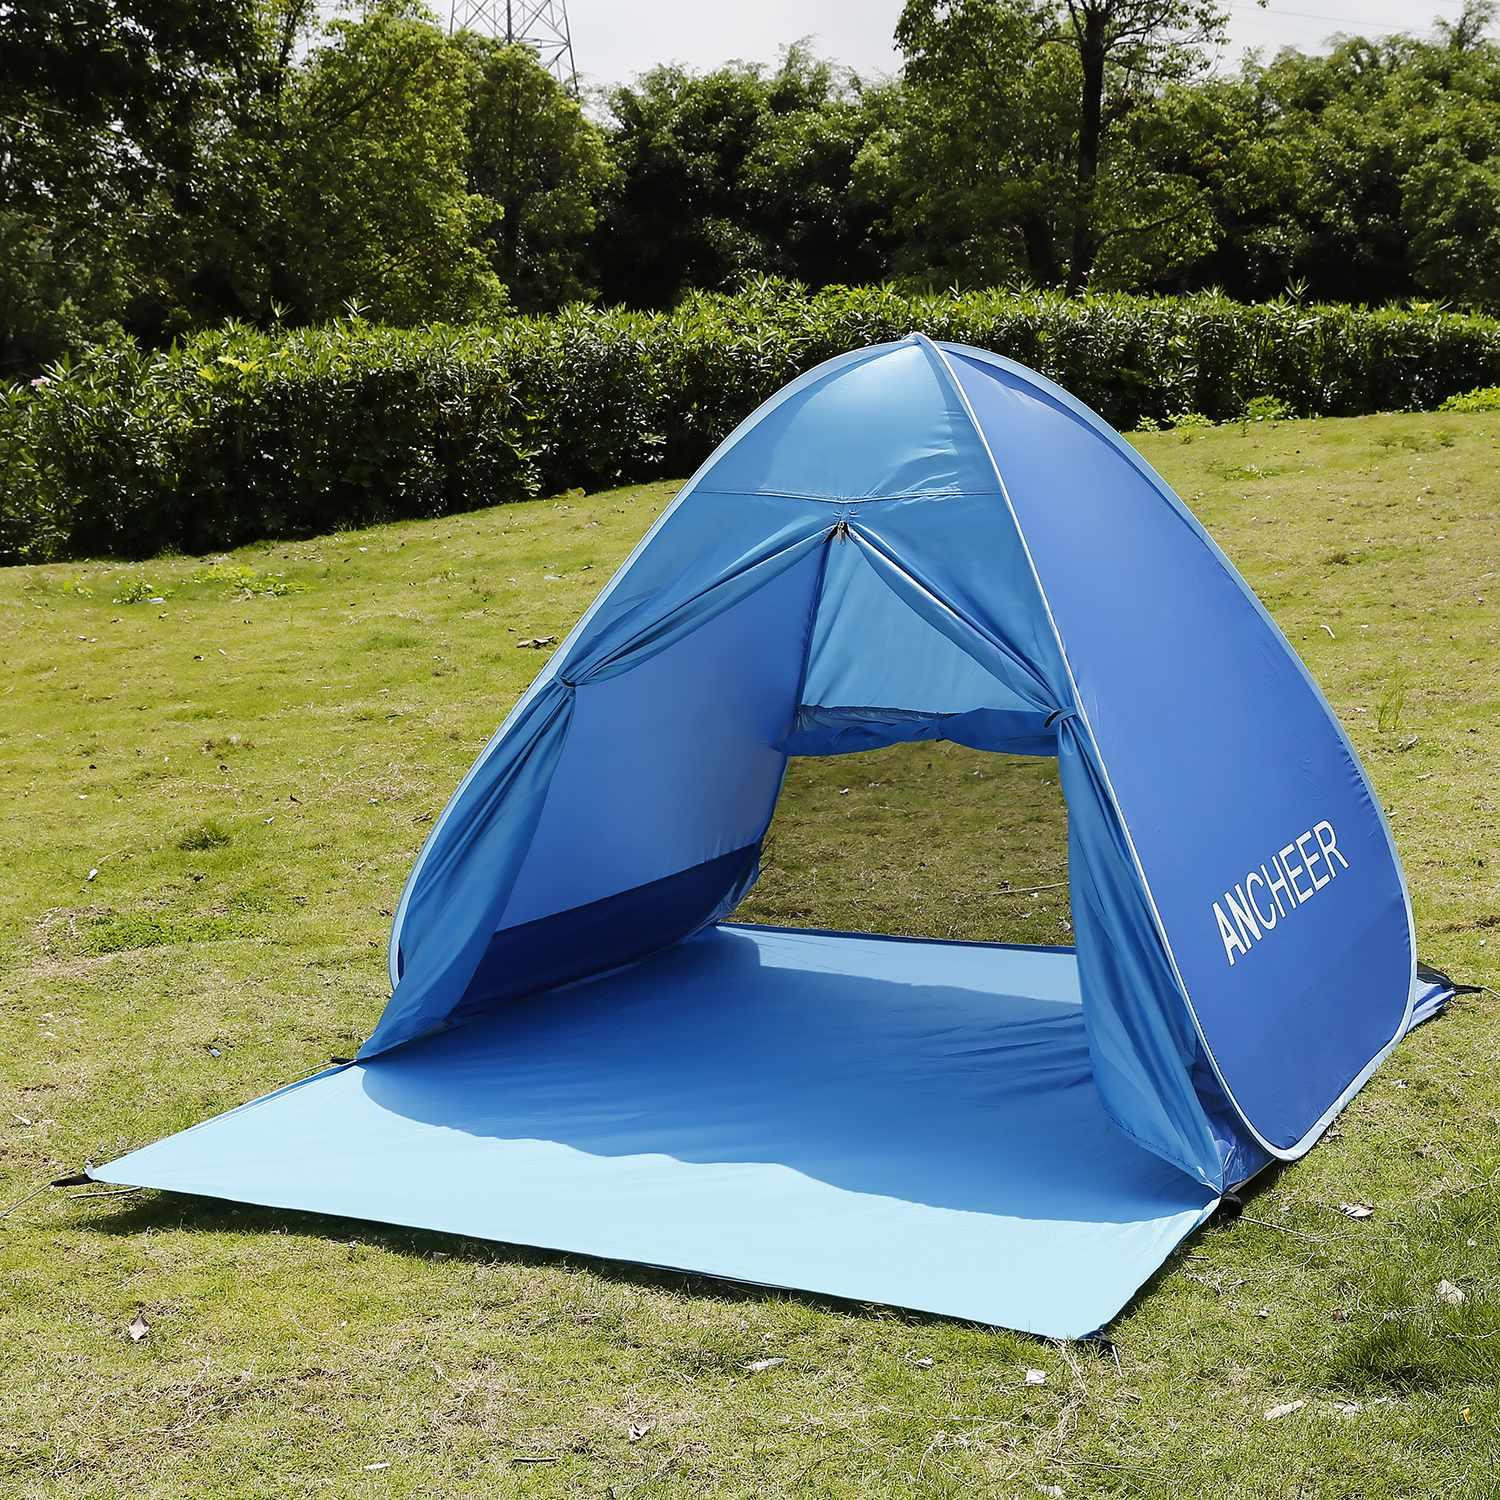 Pop Up Beach Shade Tent Instant Portable UV Protection Cabana Sun Shelter by